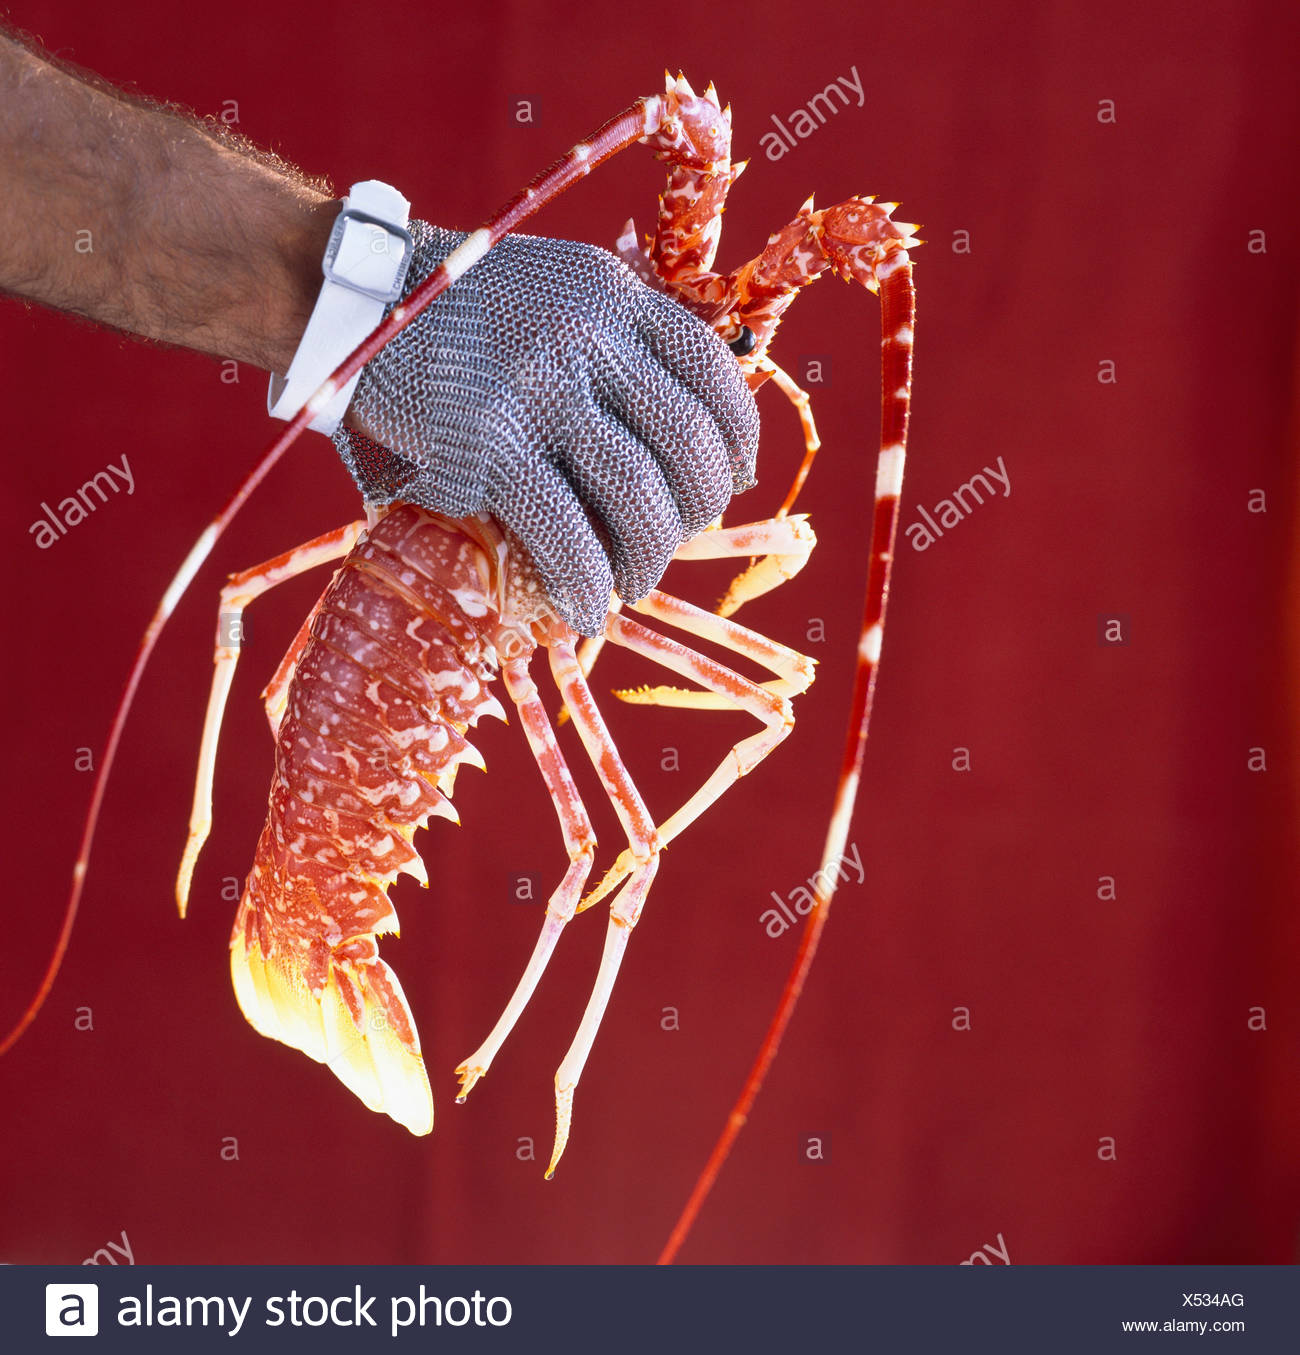 Whole crawfish and hand with glove - Stock Image